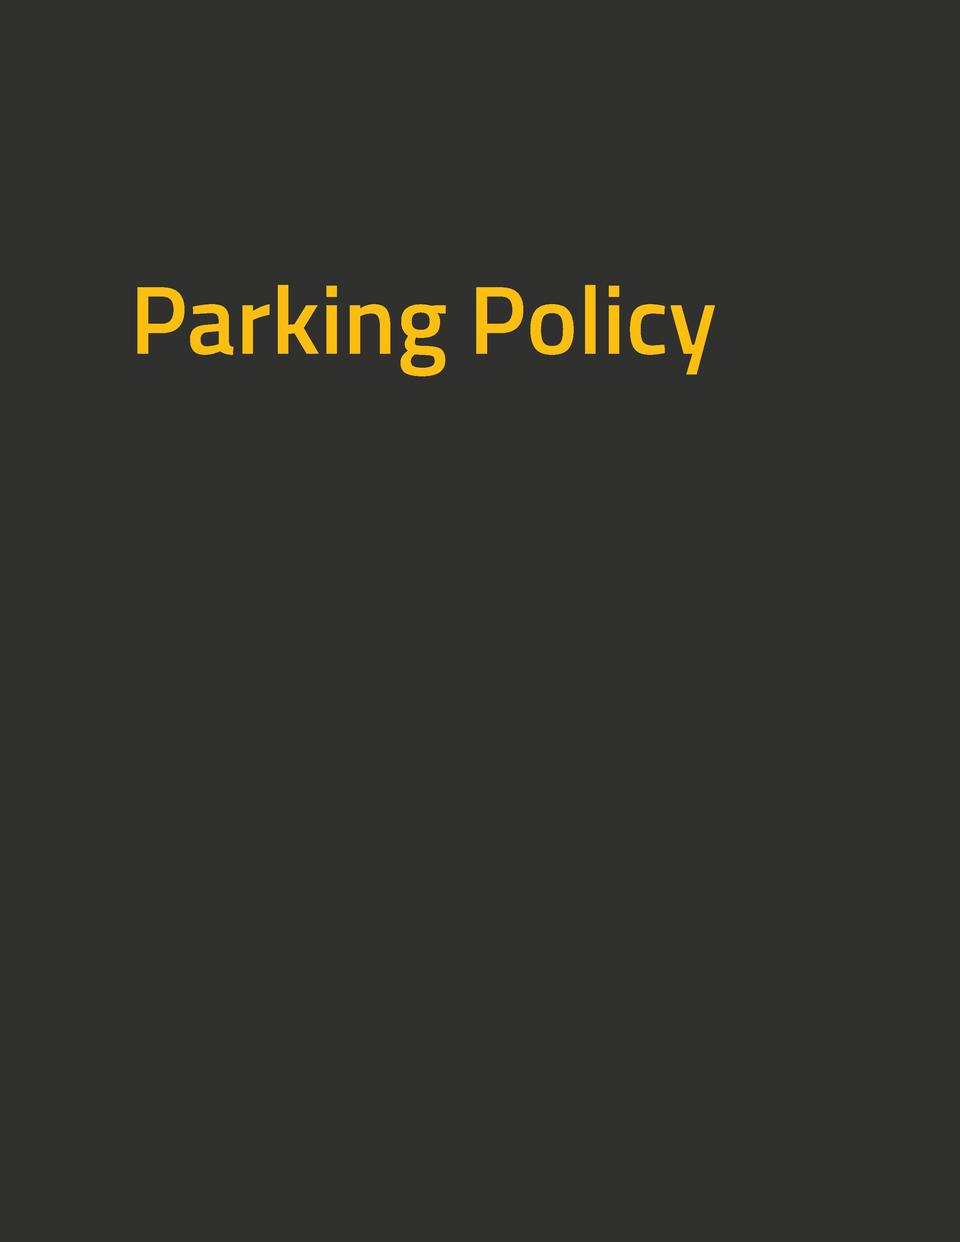 Parking Policy